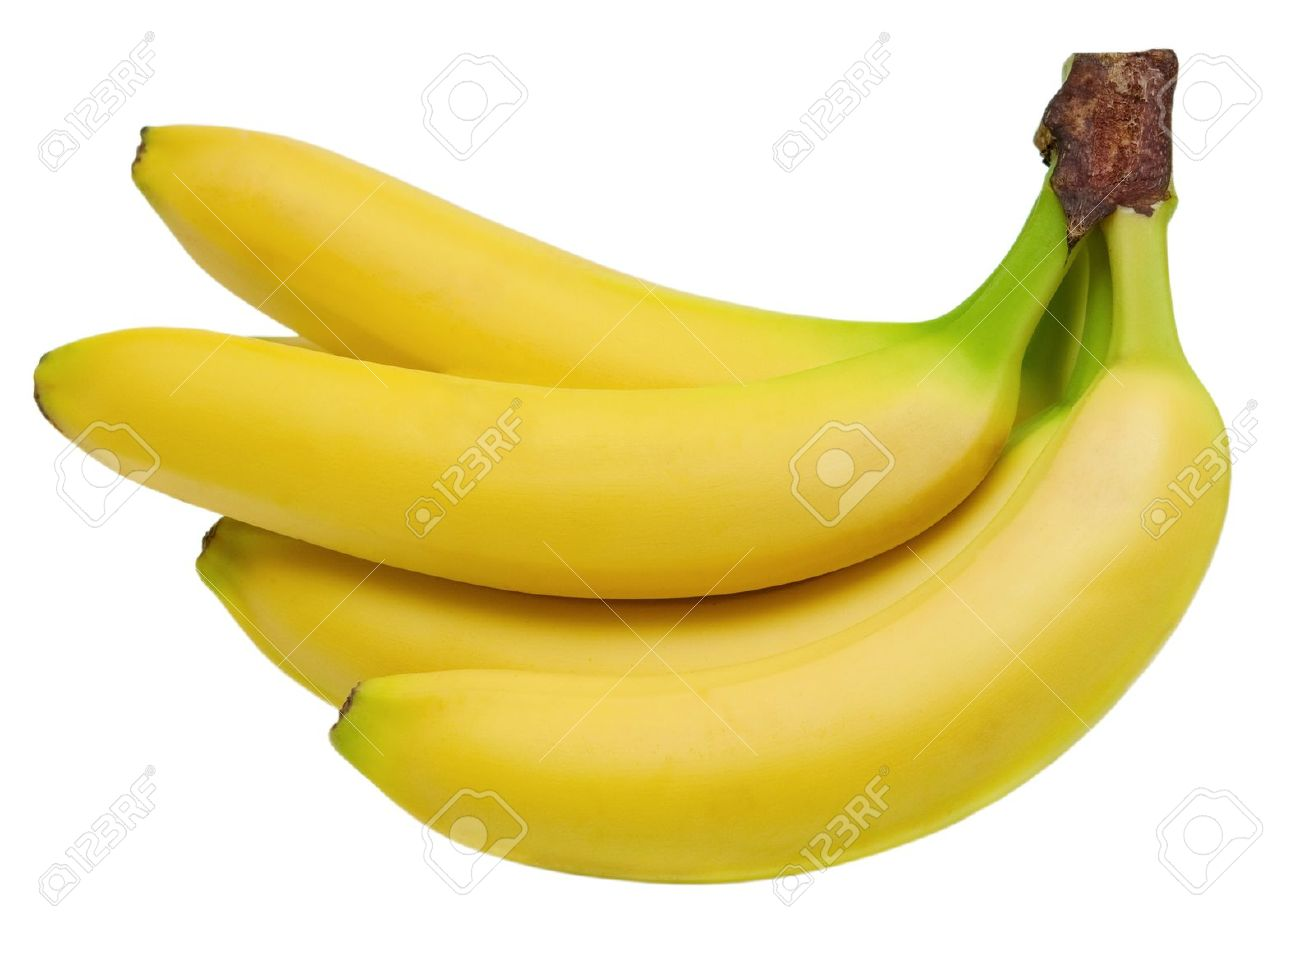 Philippine government to support banana exports to Australia